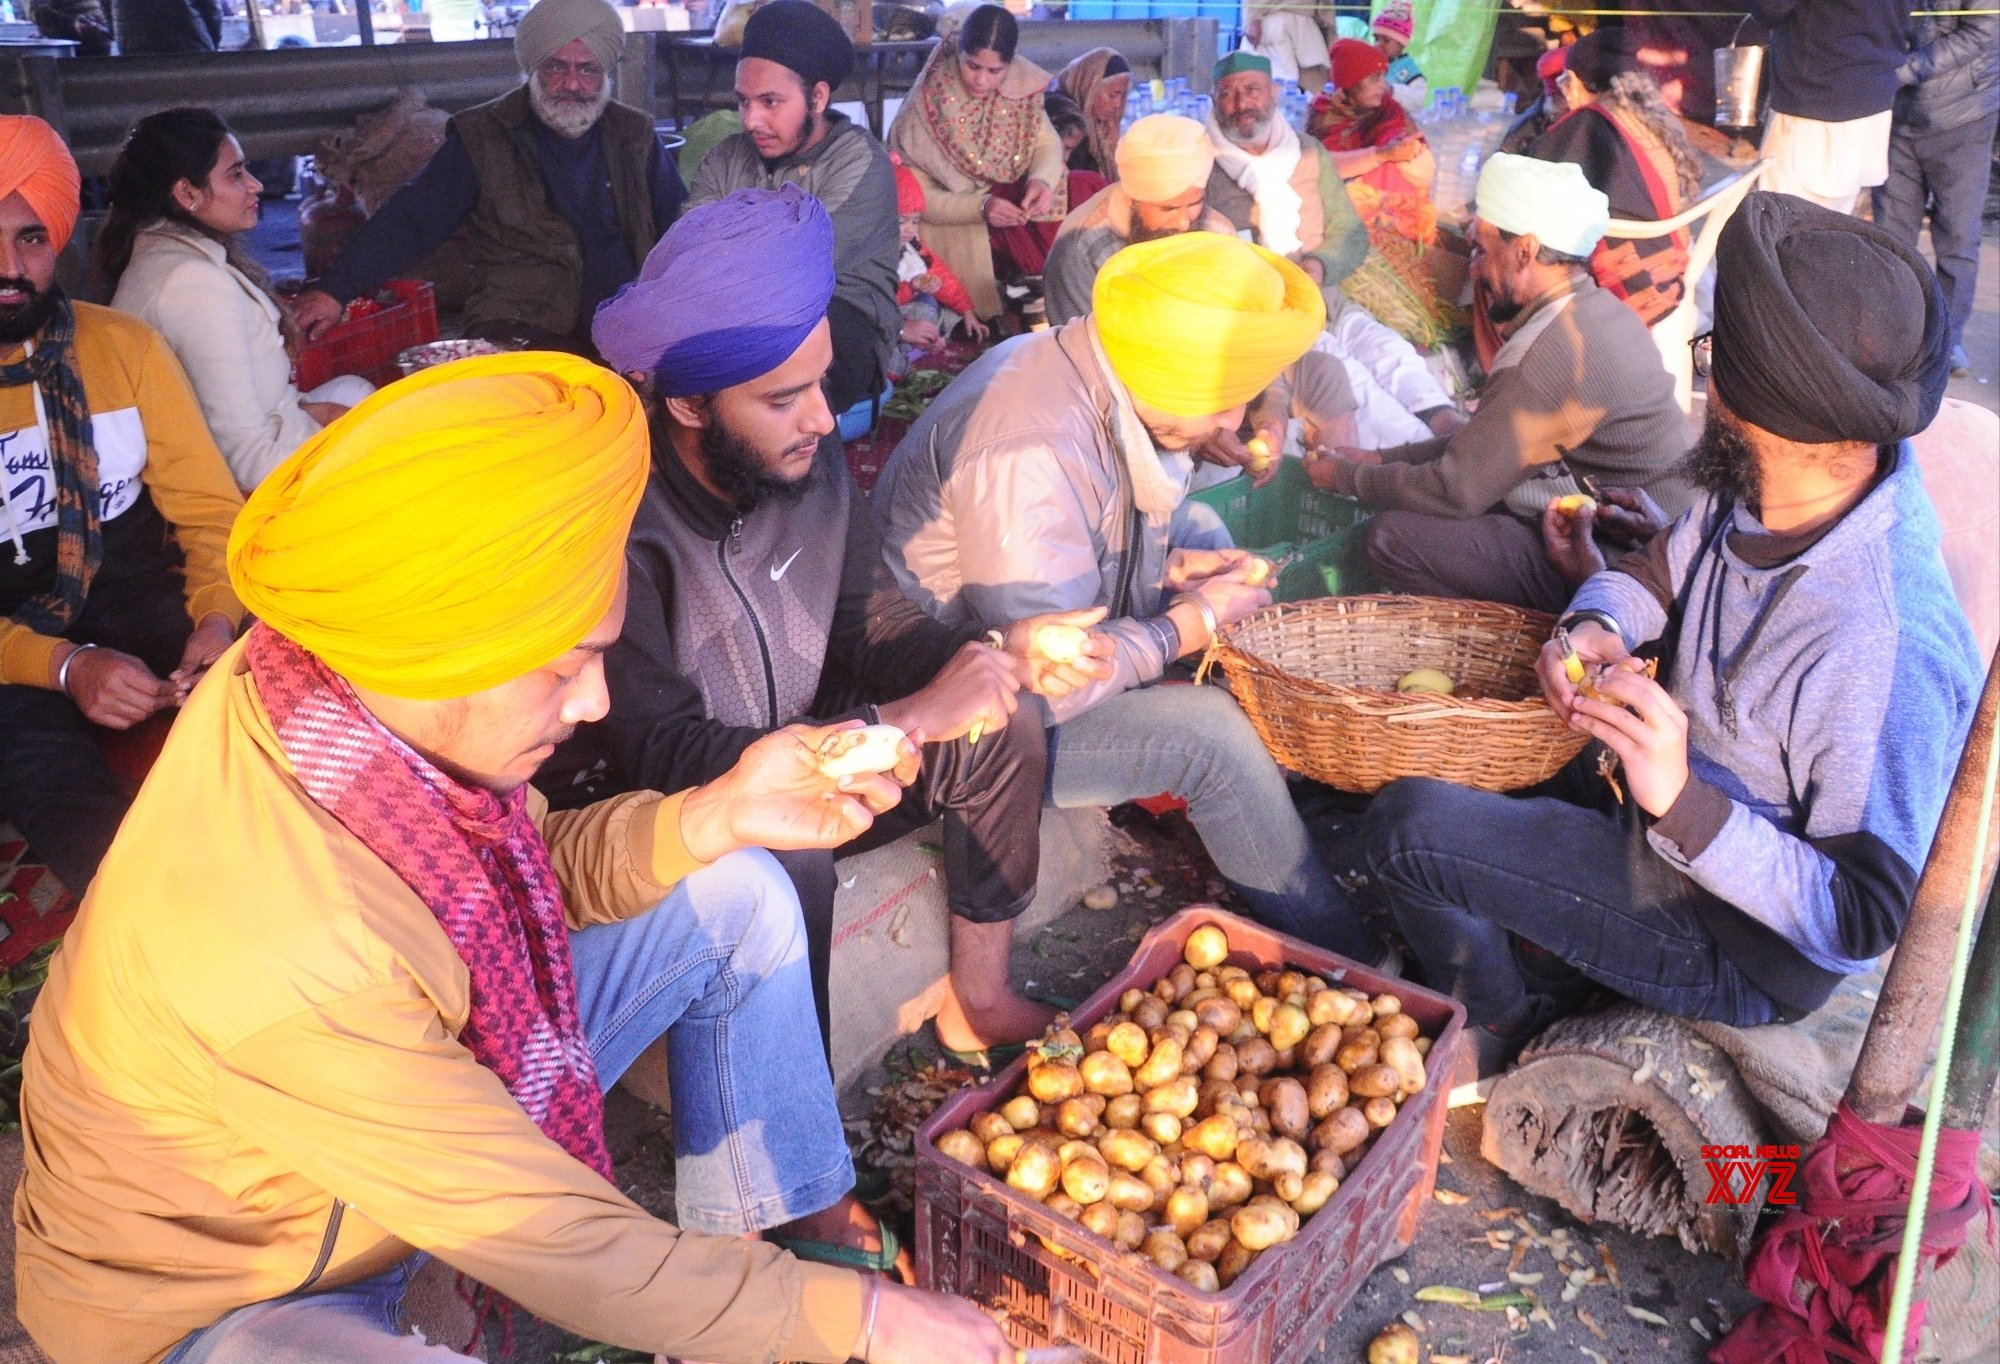 New Delhi: Lohri celebration at Delhi - Meerut expressway during a long day's protest against New Farm laws #Gallery